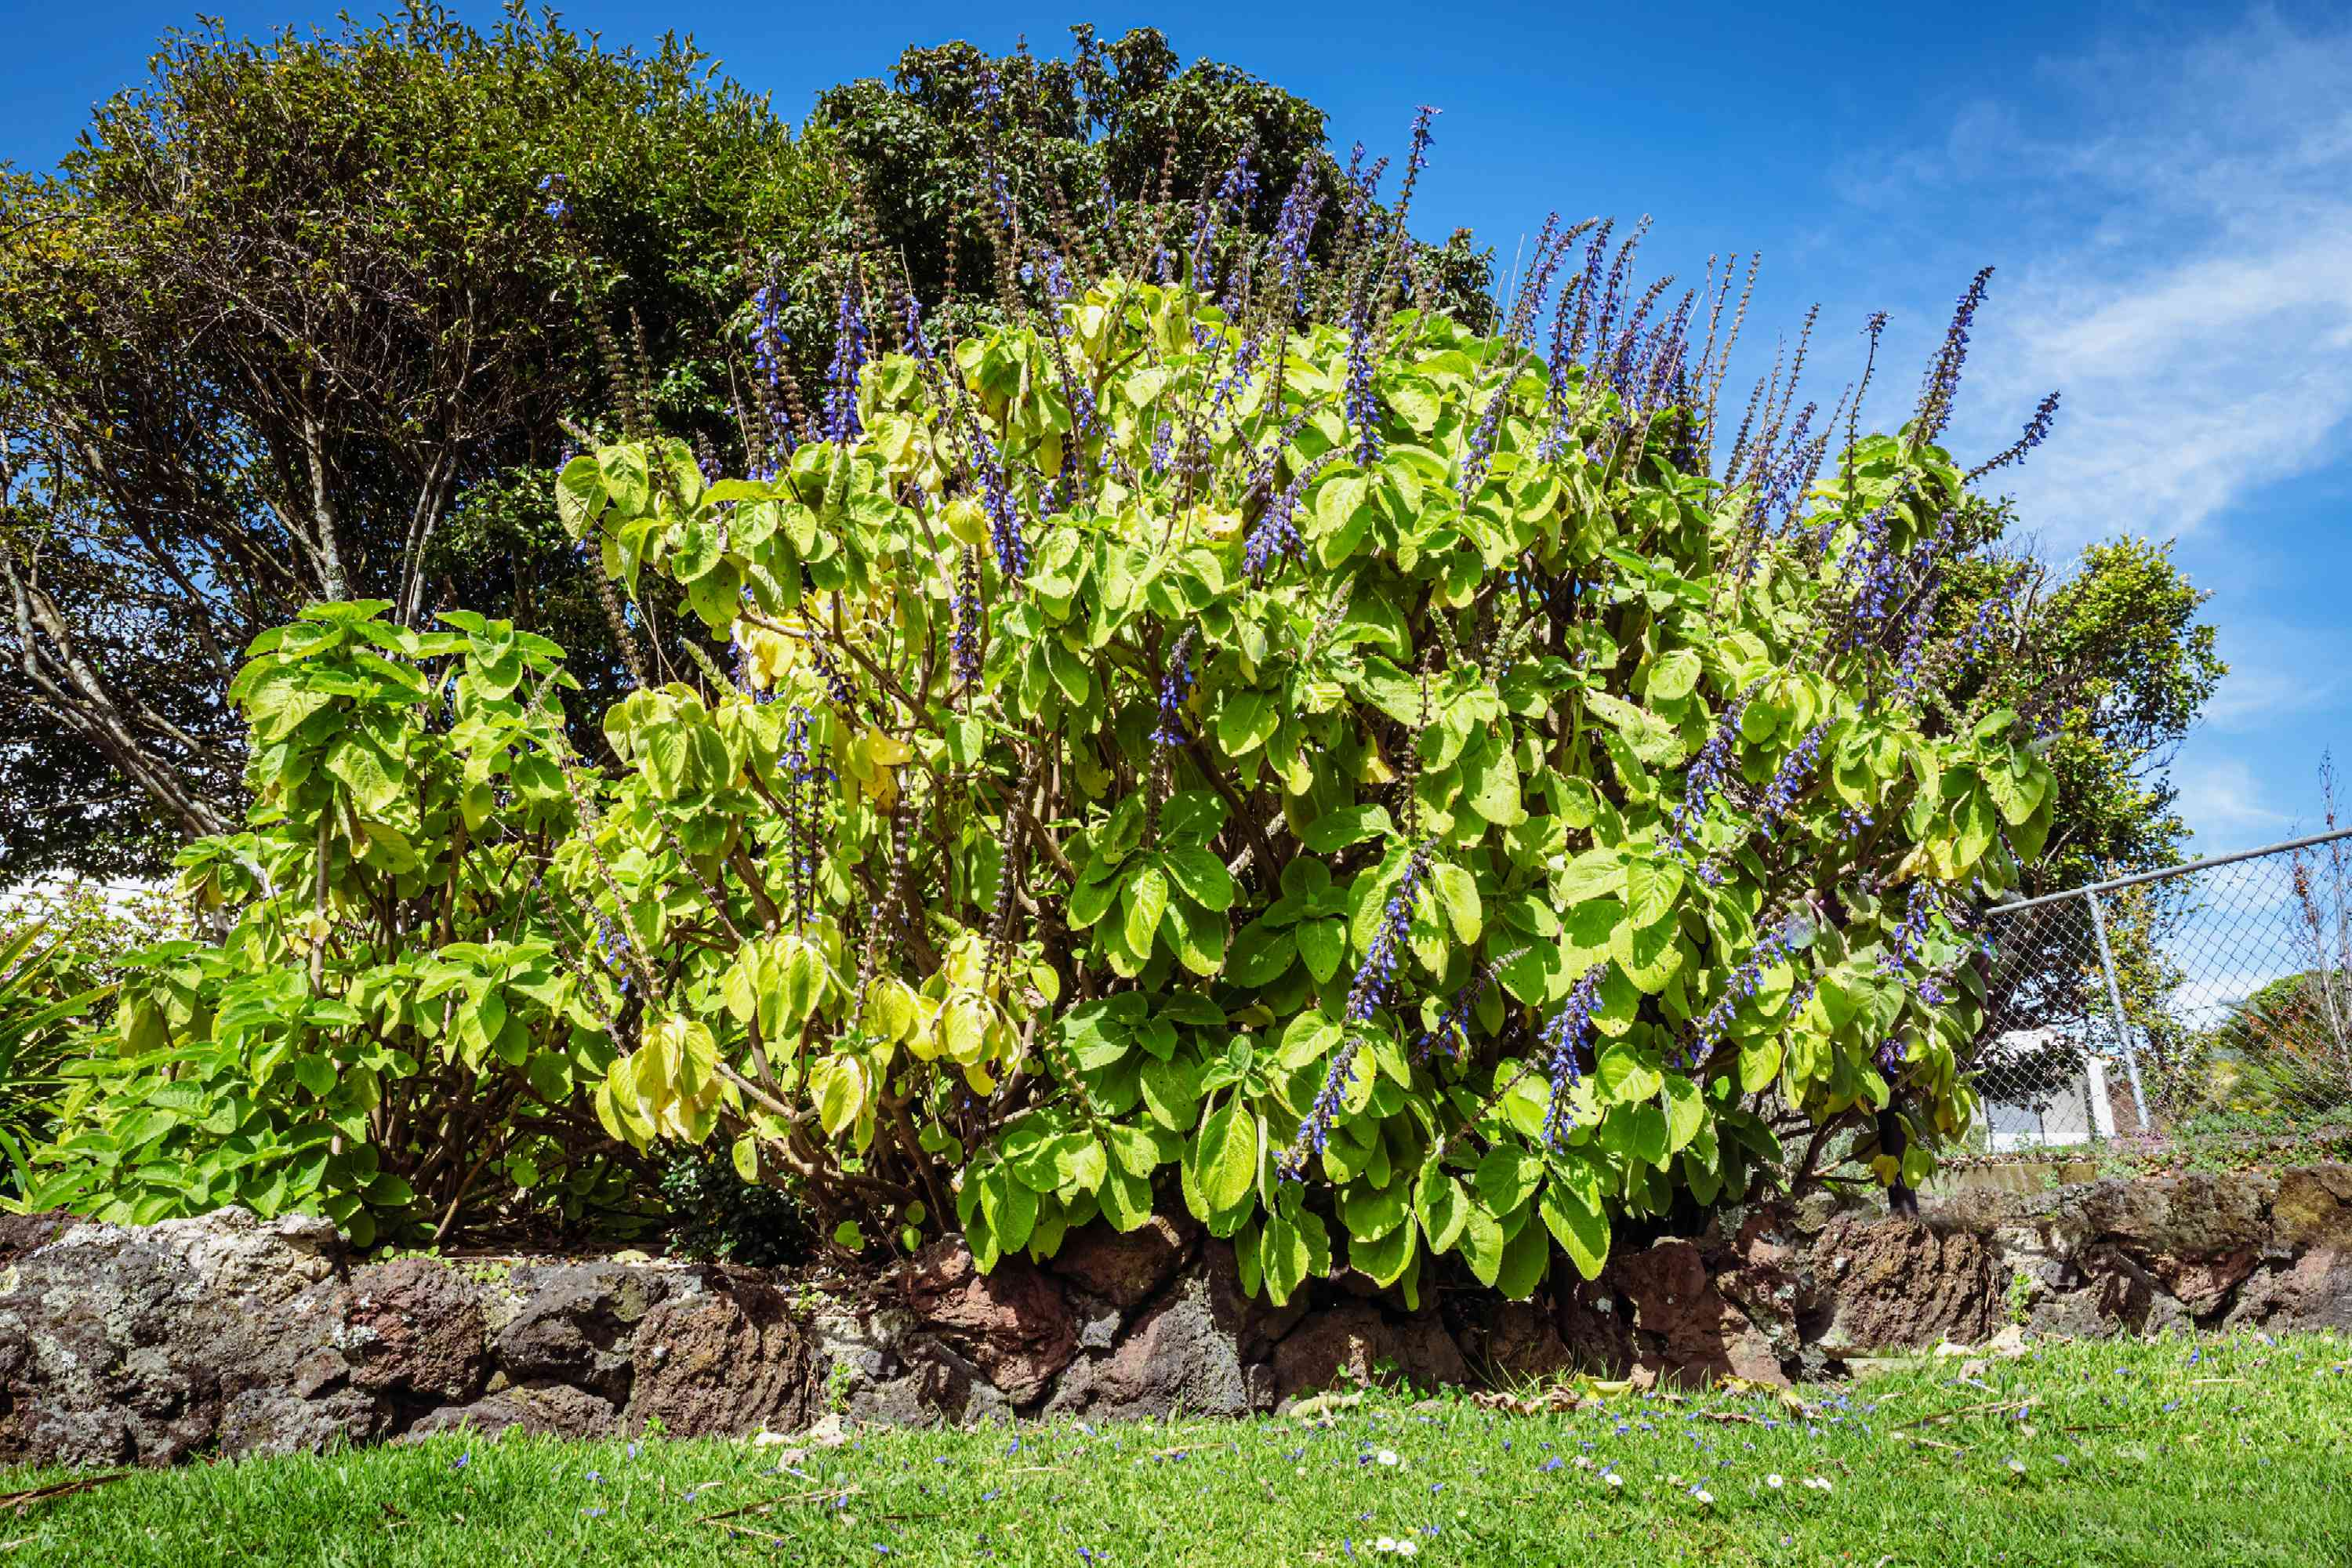 Blue spur flowers with large bushy foliage and blue-purple flower stalks behind rock wall in sunlight